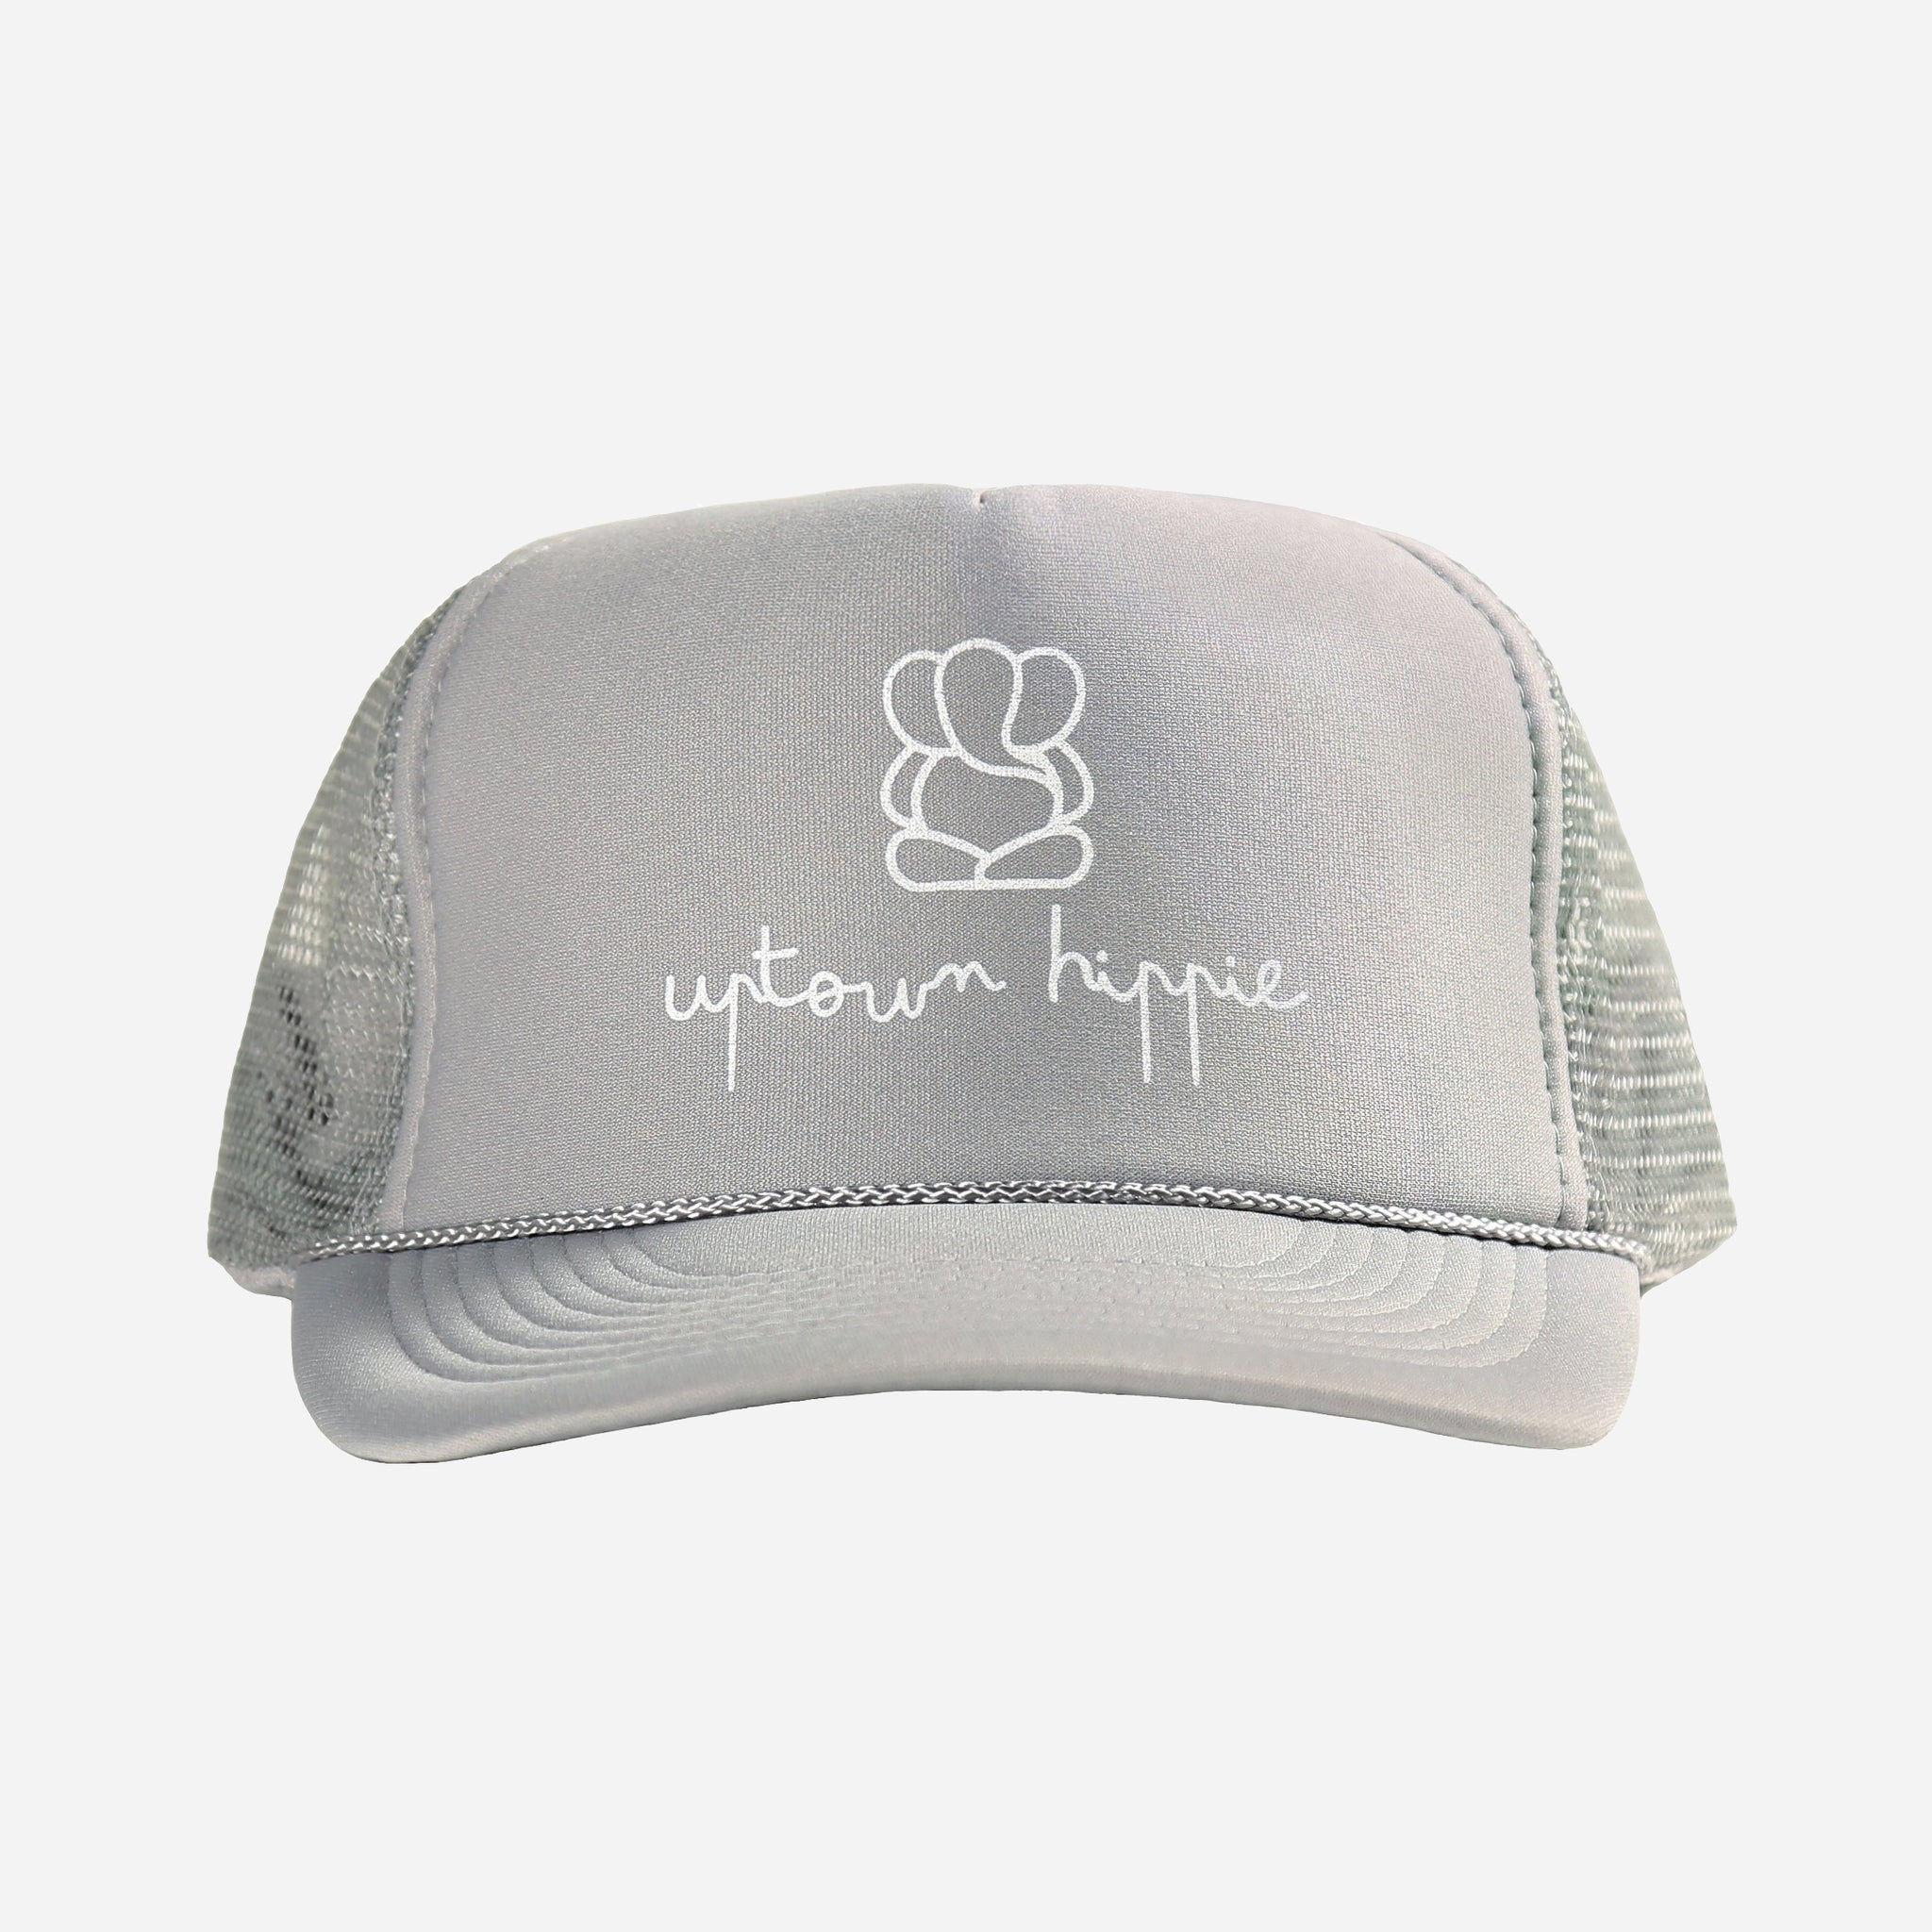 Grey Uptown Hippie Hat